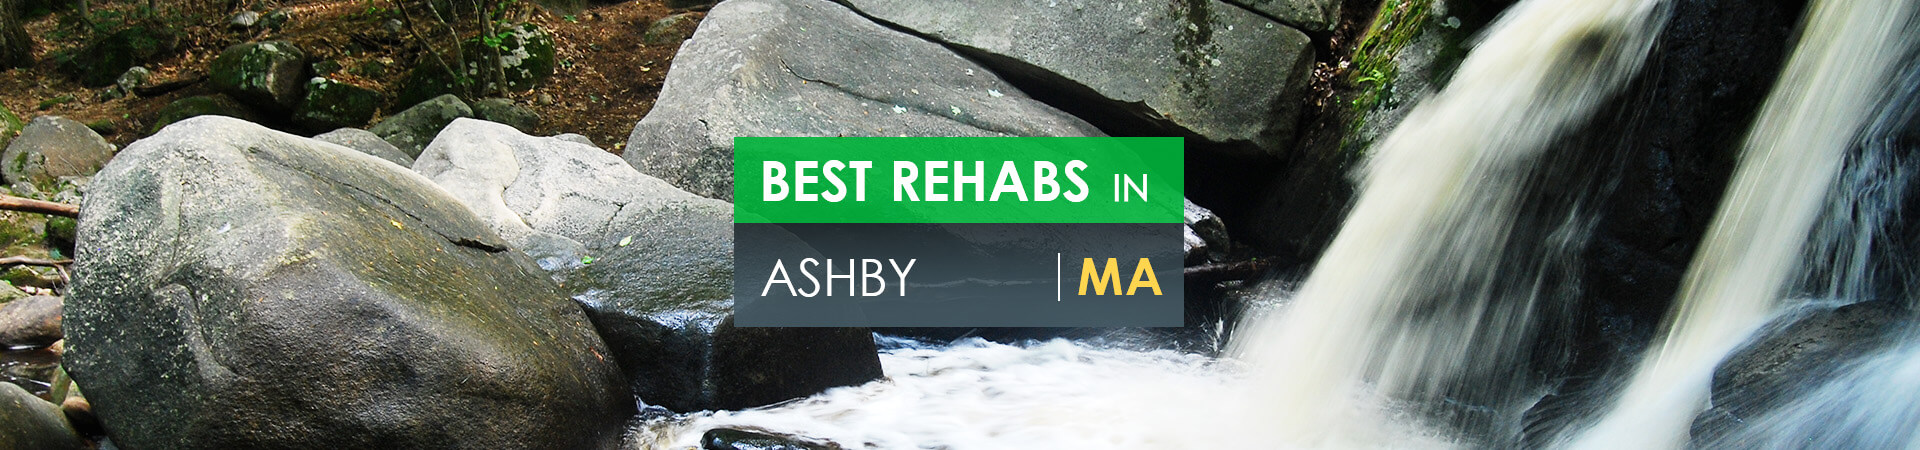 Best rehabs in Ashby, MA